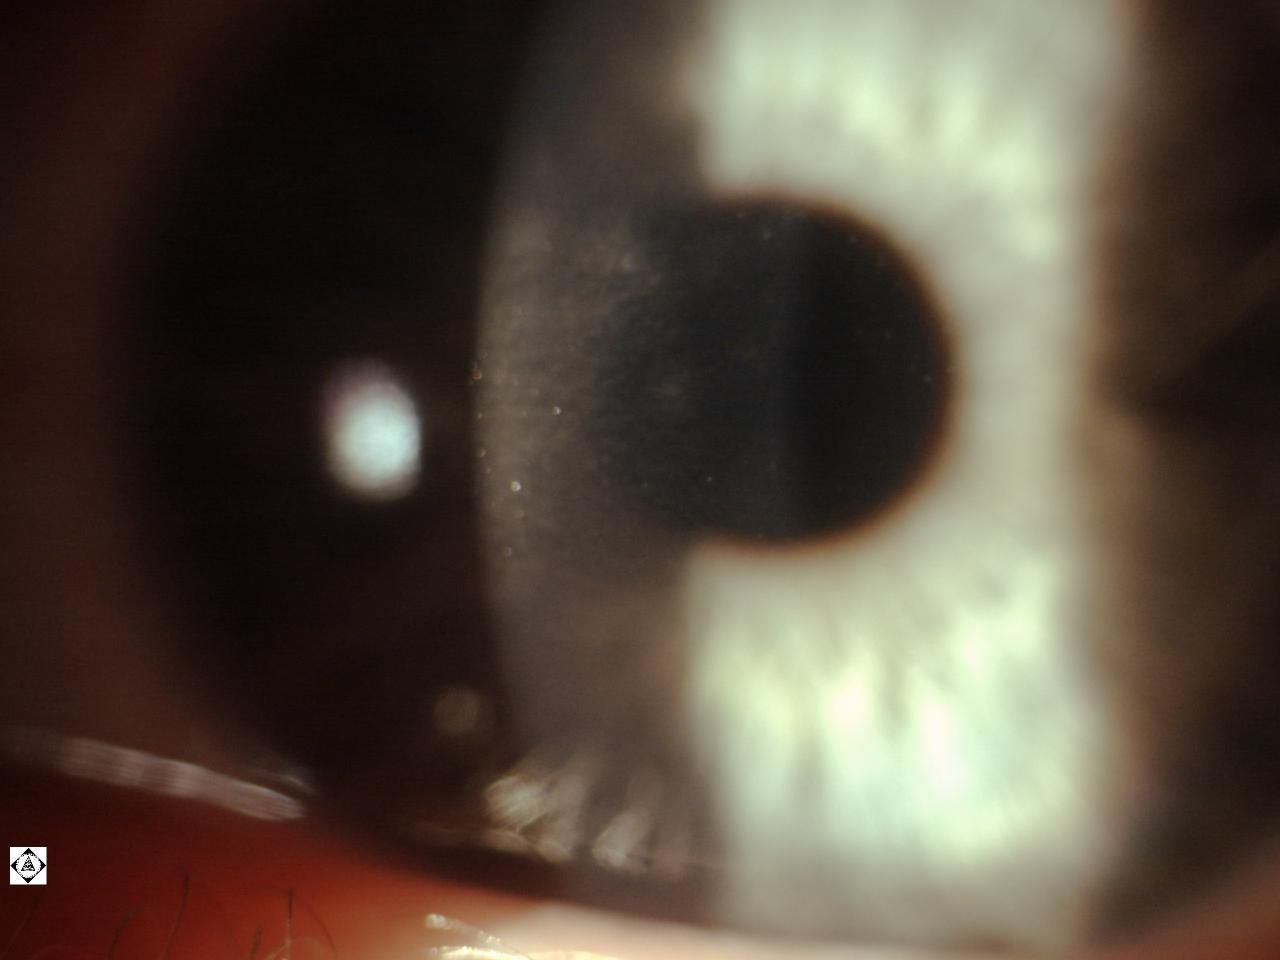 CORNEAL SUBEPITHELIAL INFILTRATE FROM VIRAL INFECTION